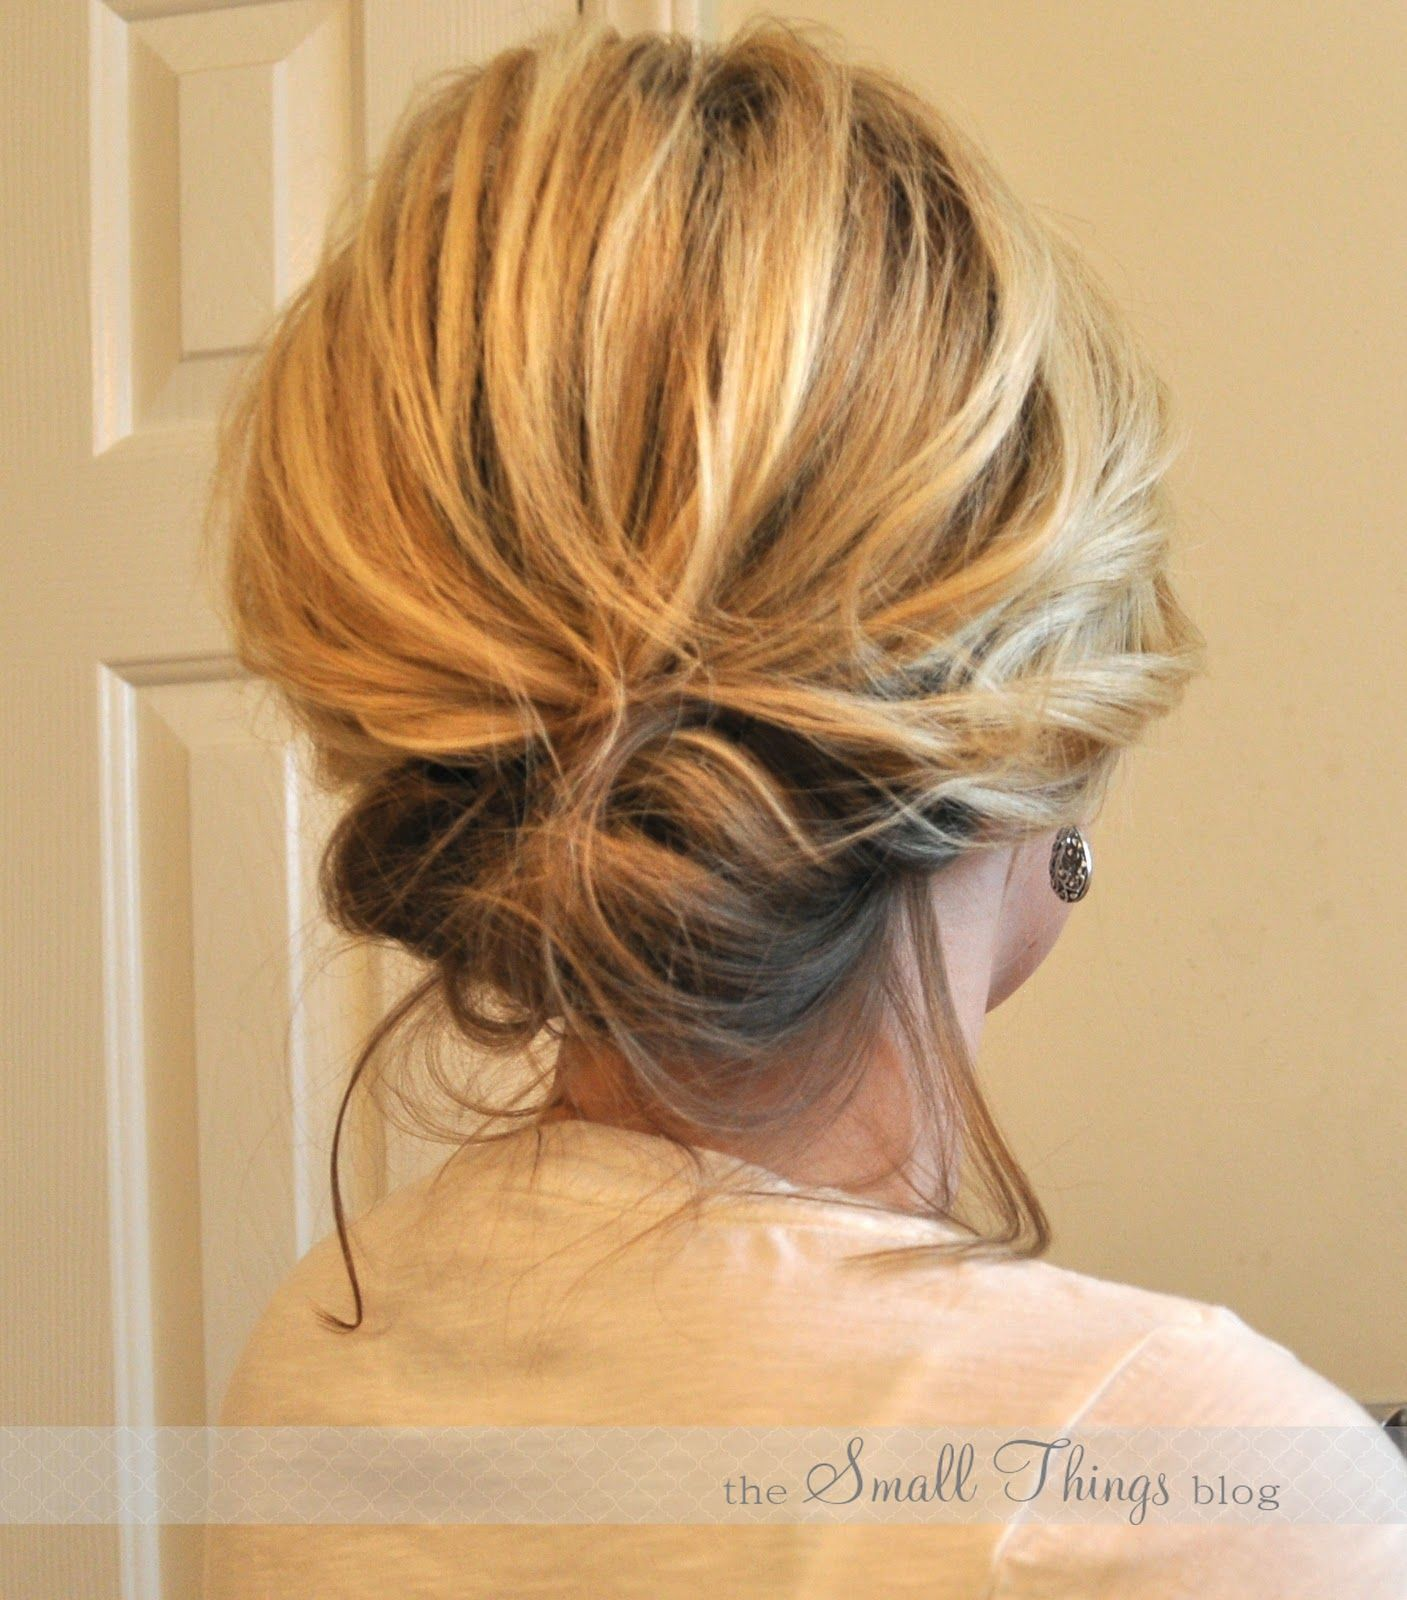 The chic updo and other styles for shoulderlength hair hair tips